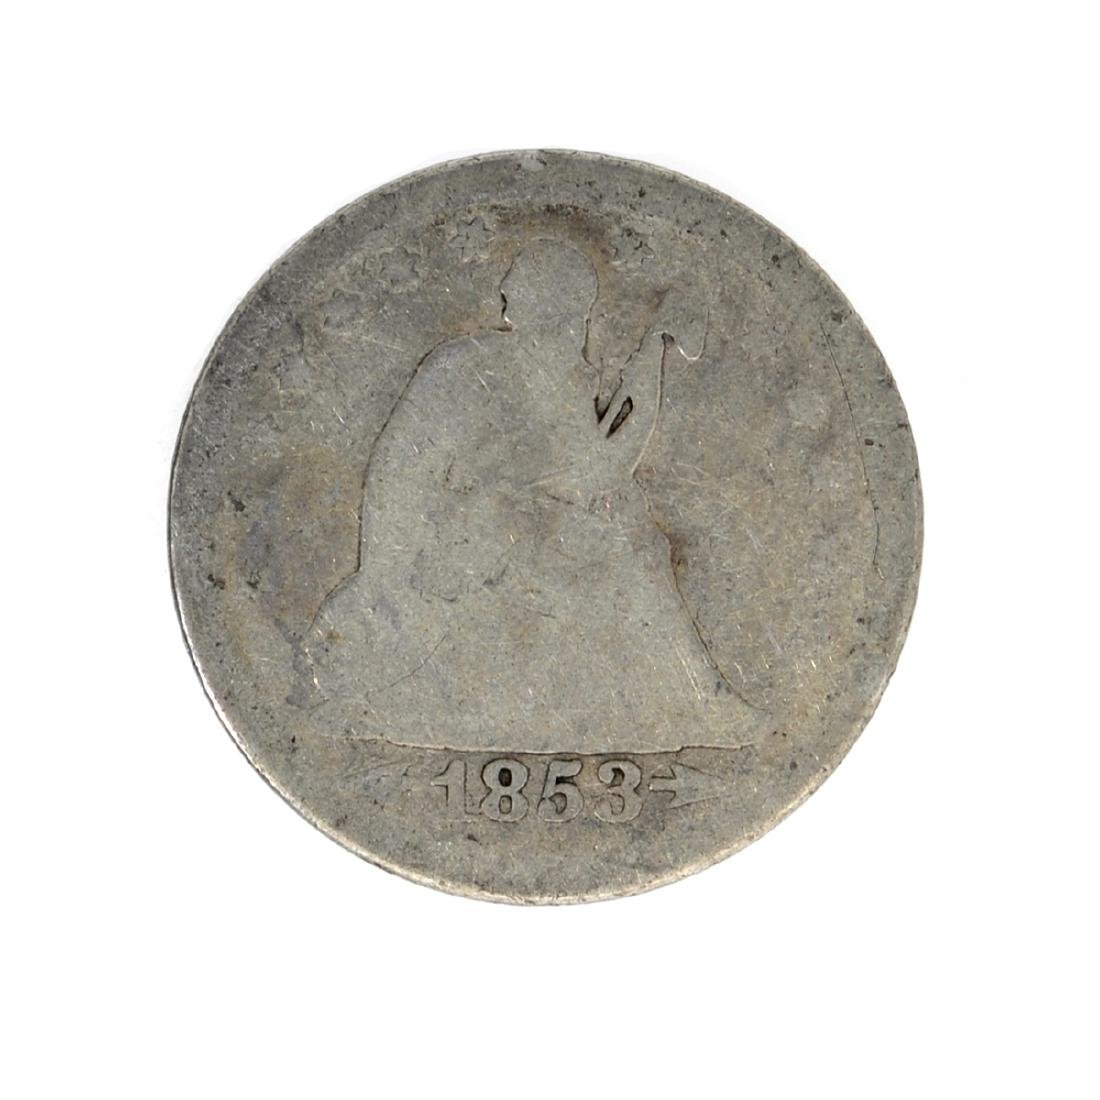 1853 Liberty Seated Arrows At Date, Rays Around Eagle